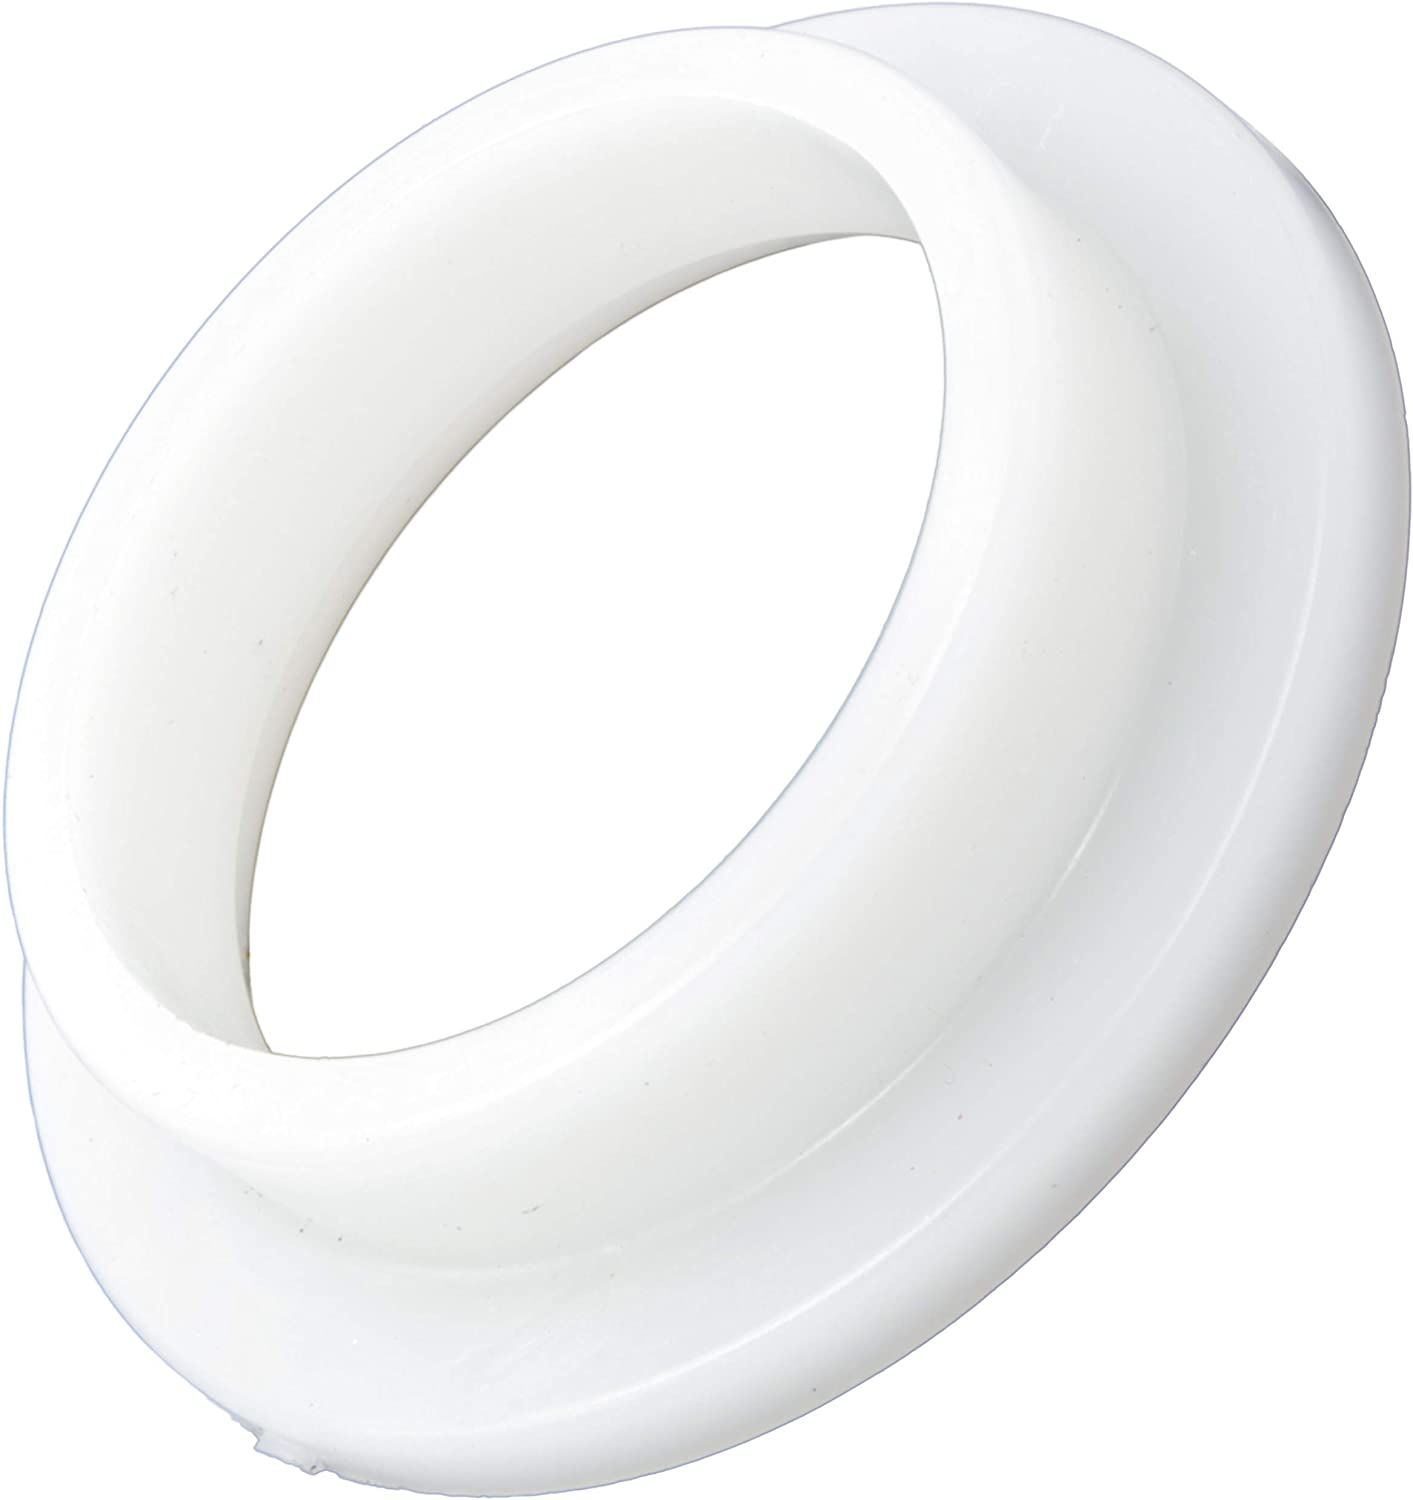 Supplying Demand 9742946 Dishwasher Radial Ring Bearing Compatible With Whirlpool Fits PS11747064, WP9742946VP